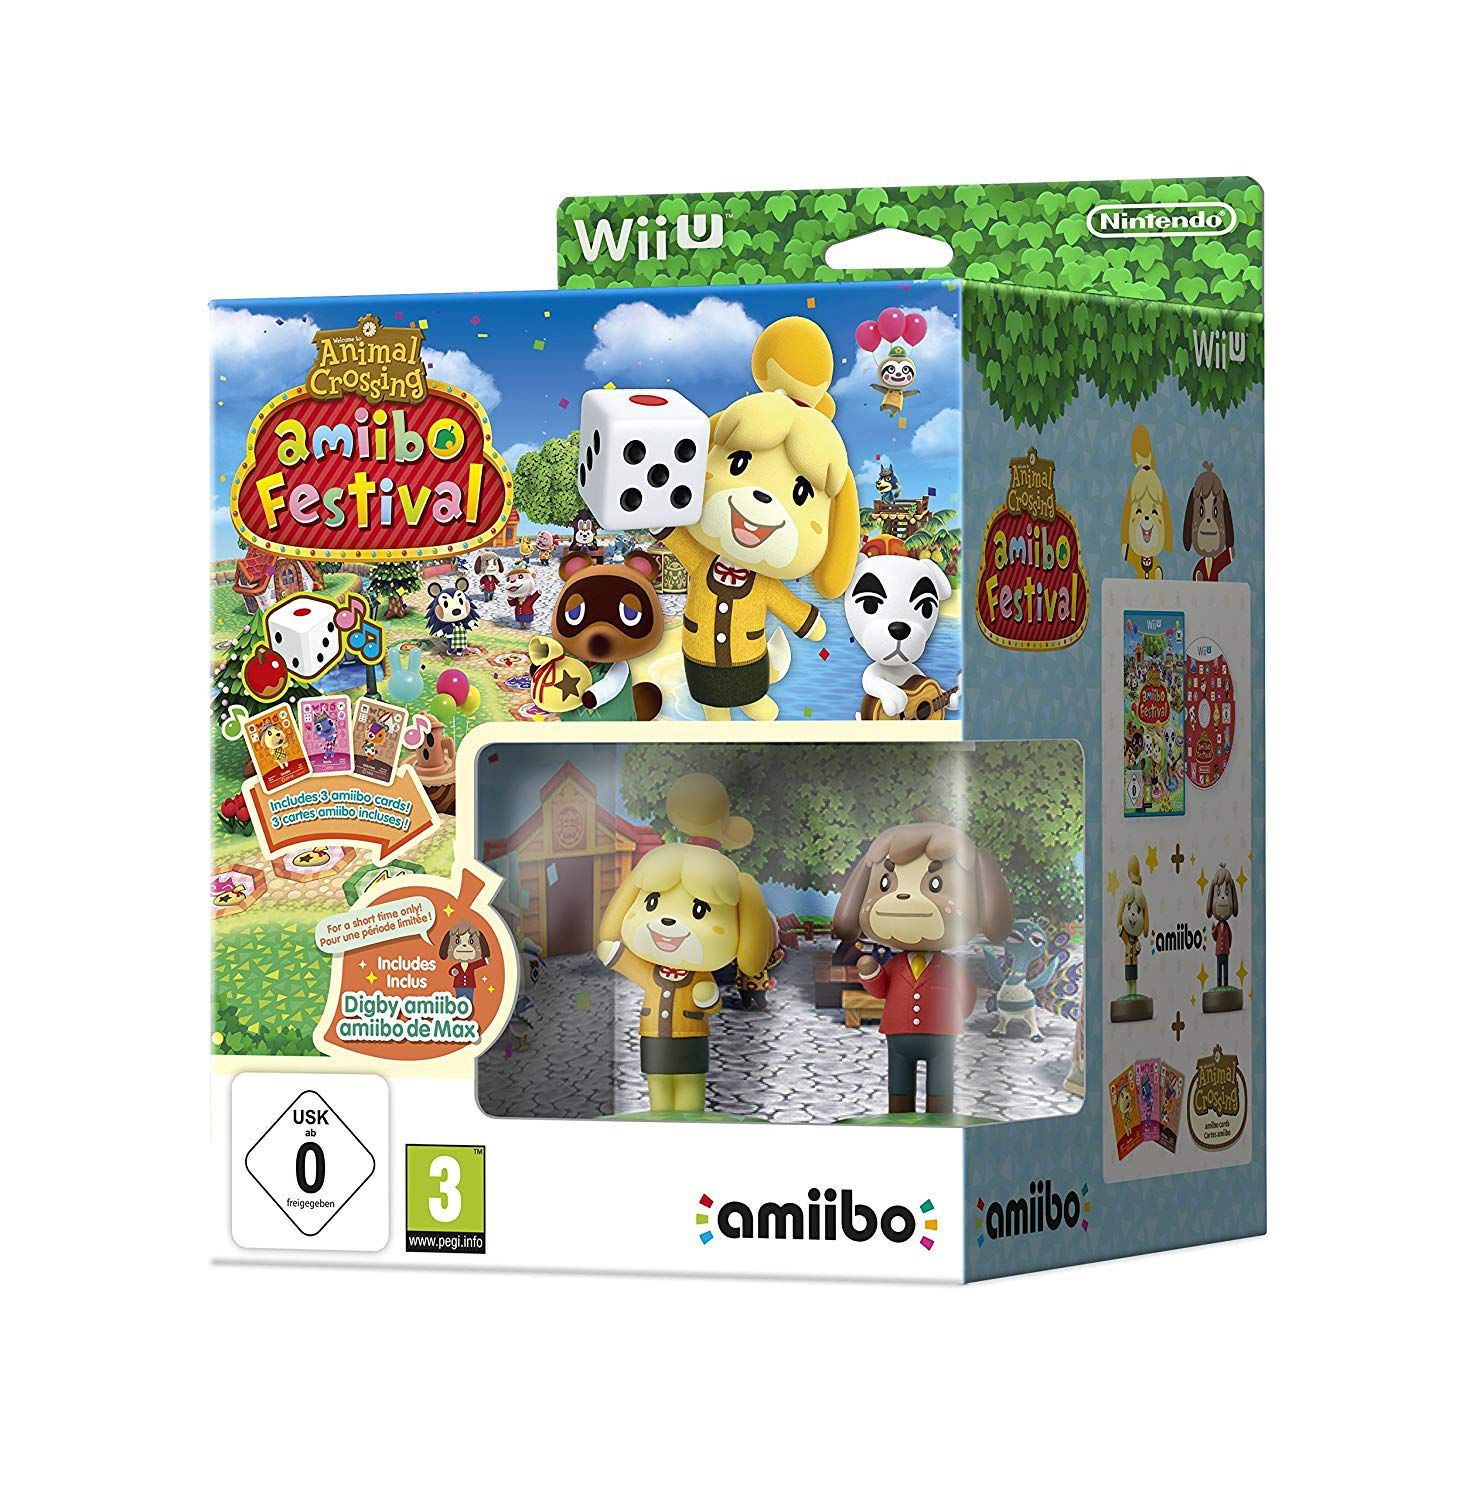 Animal Crossing: Amiibo Festival - Nintendo Wii U